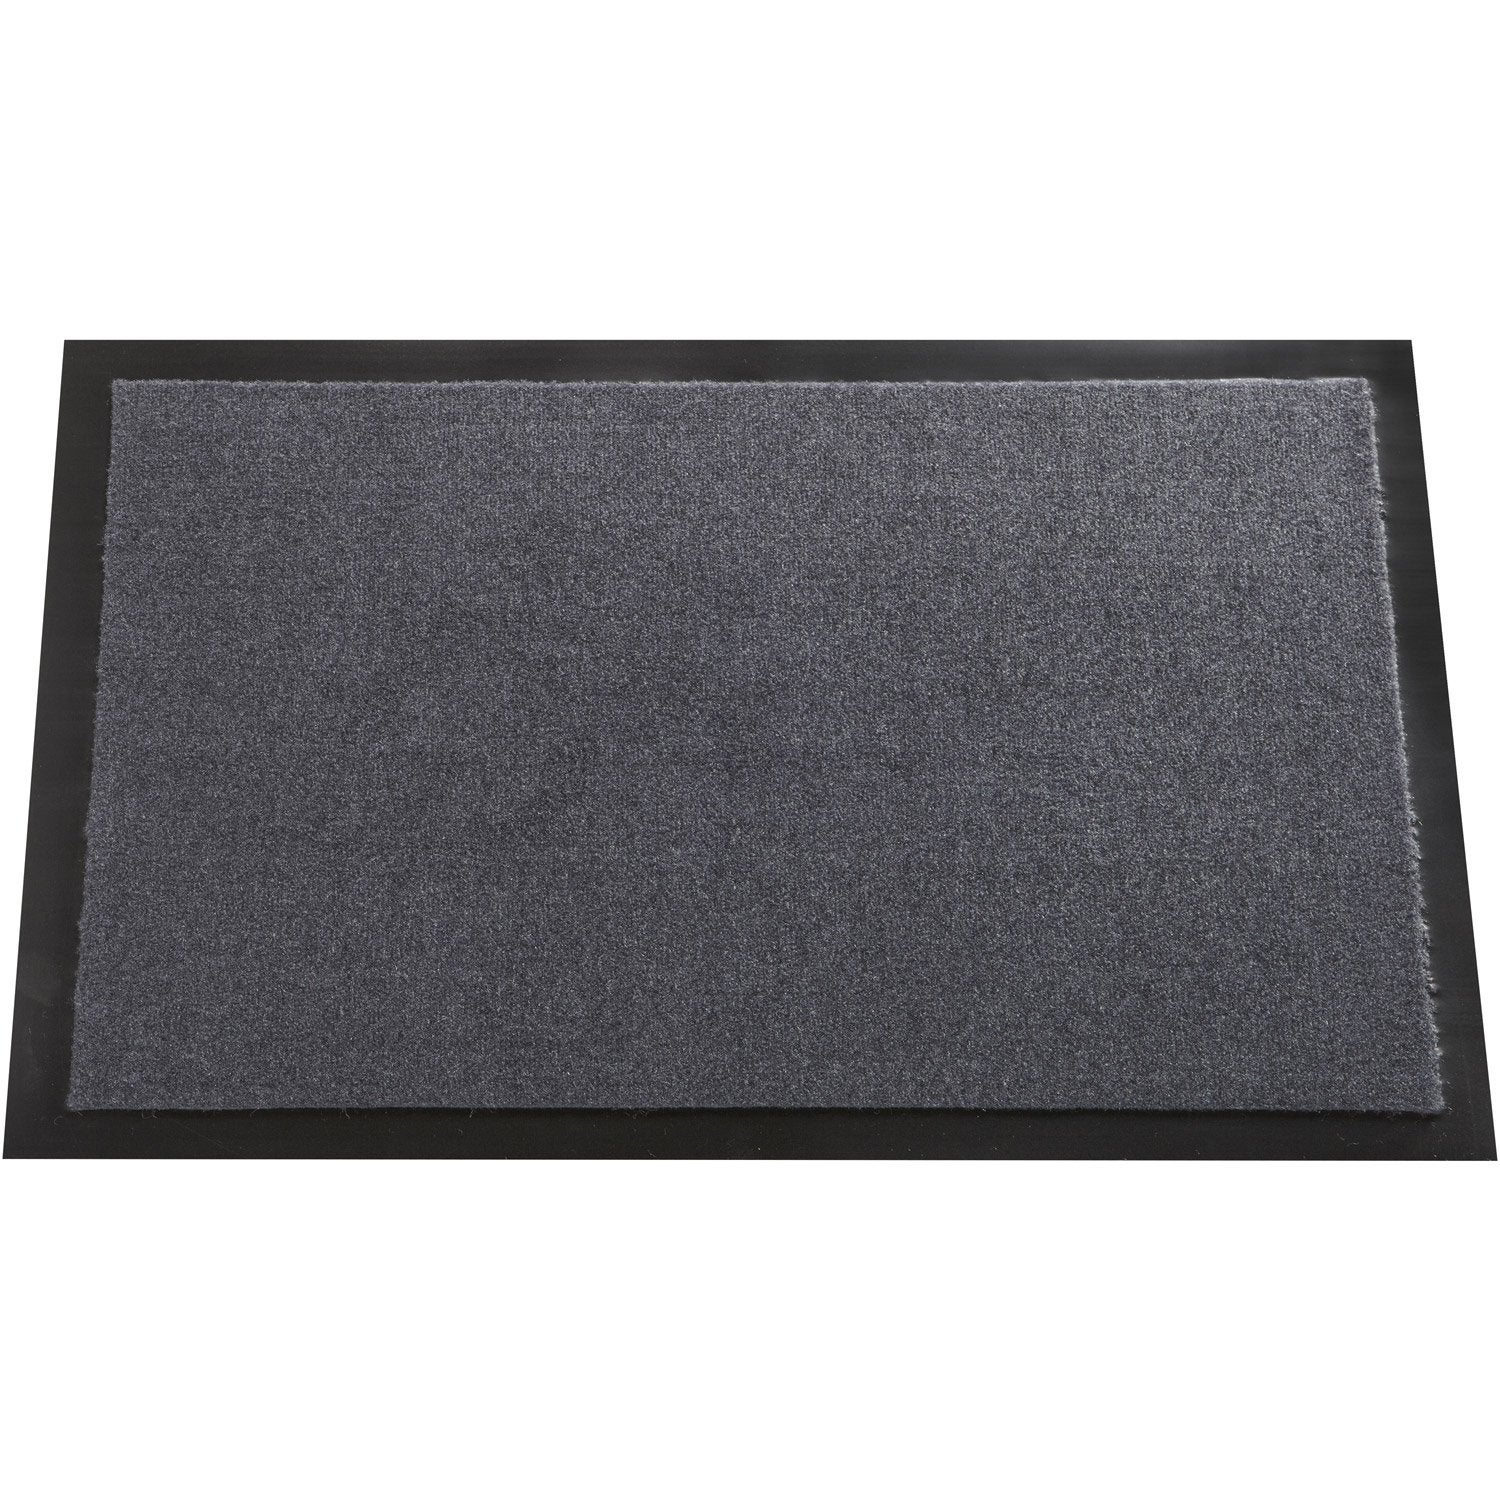 trendy galets gris leroy merlin tapis salle de bain leroy merlin with tapis salle de bain leroy. Black Bedroom Furniture Sets. Home Design Ideas